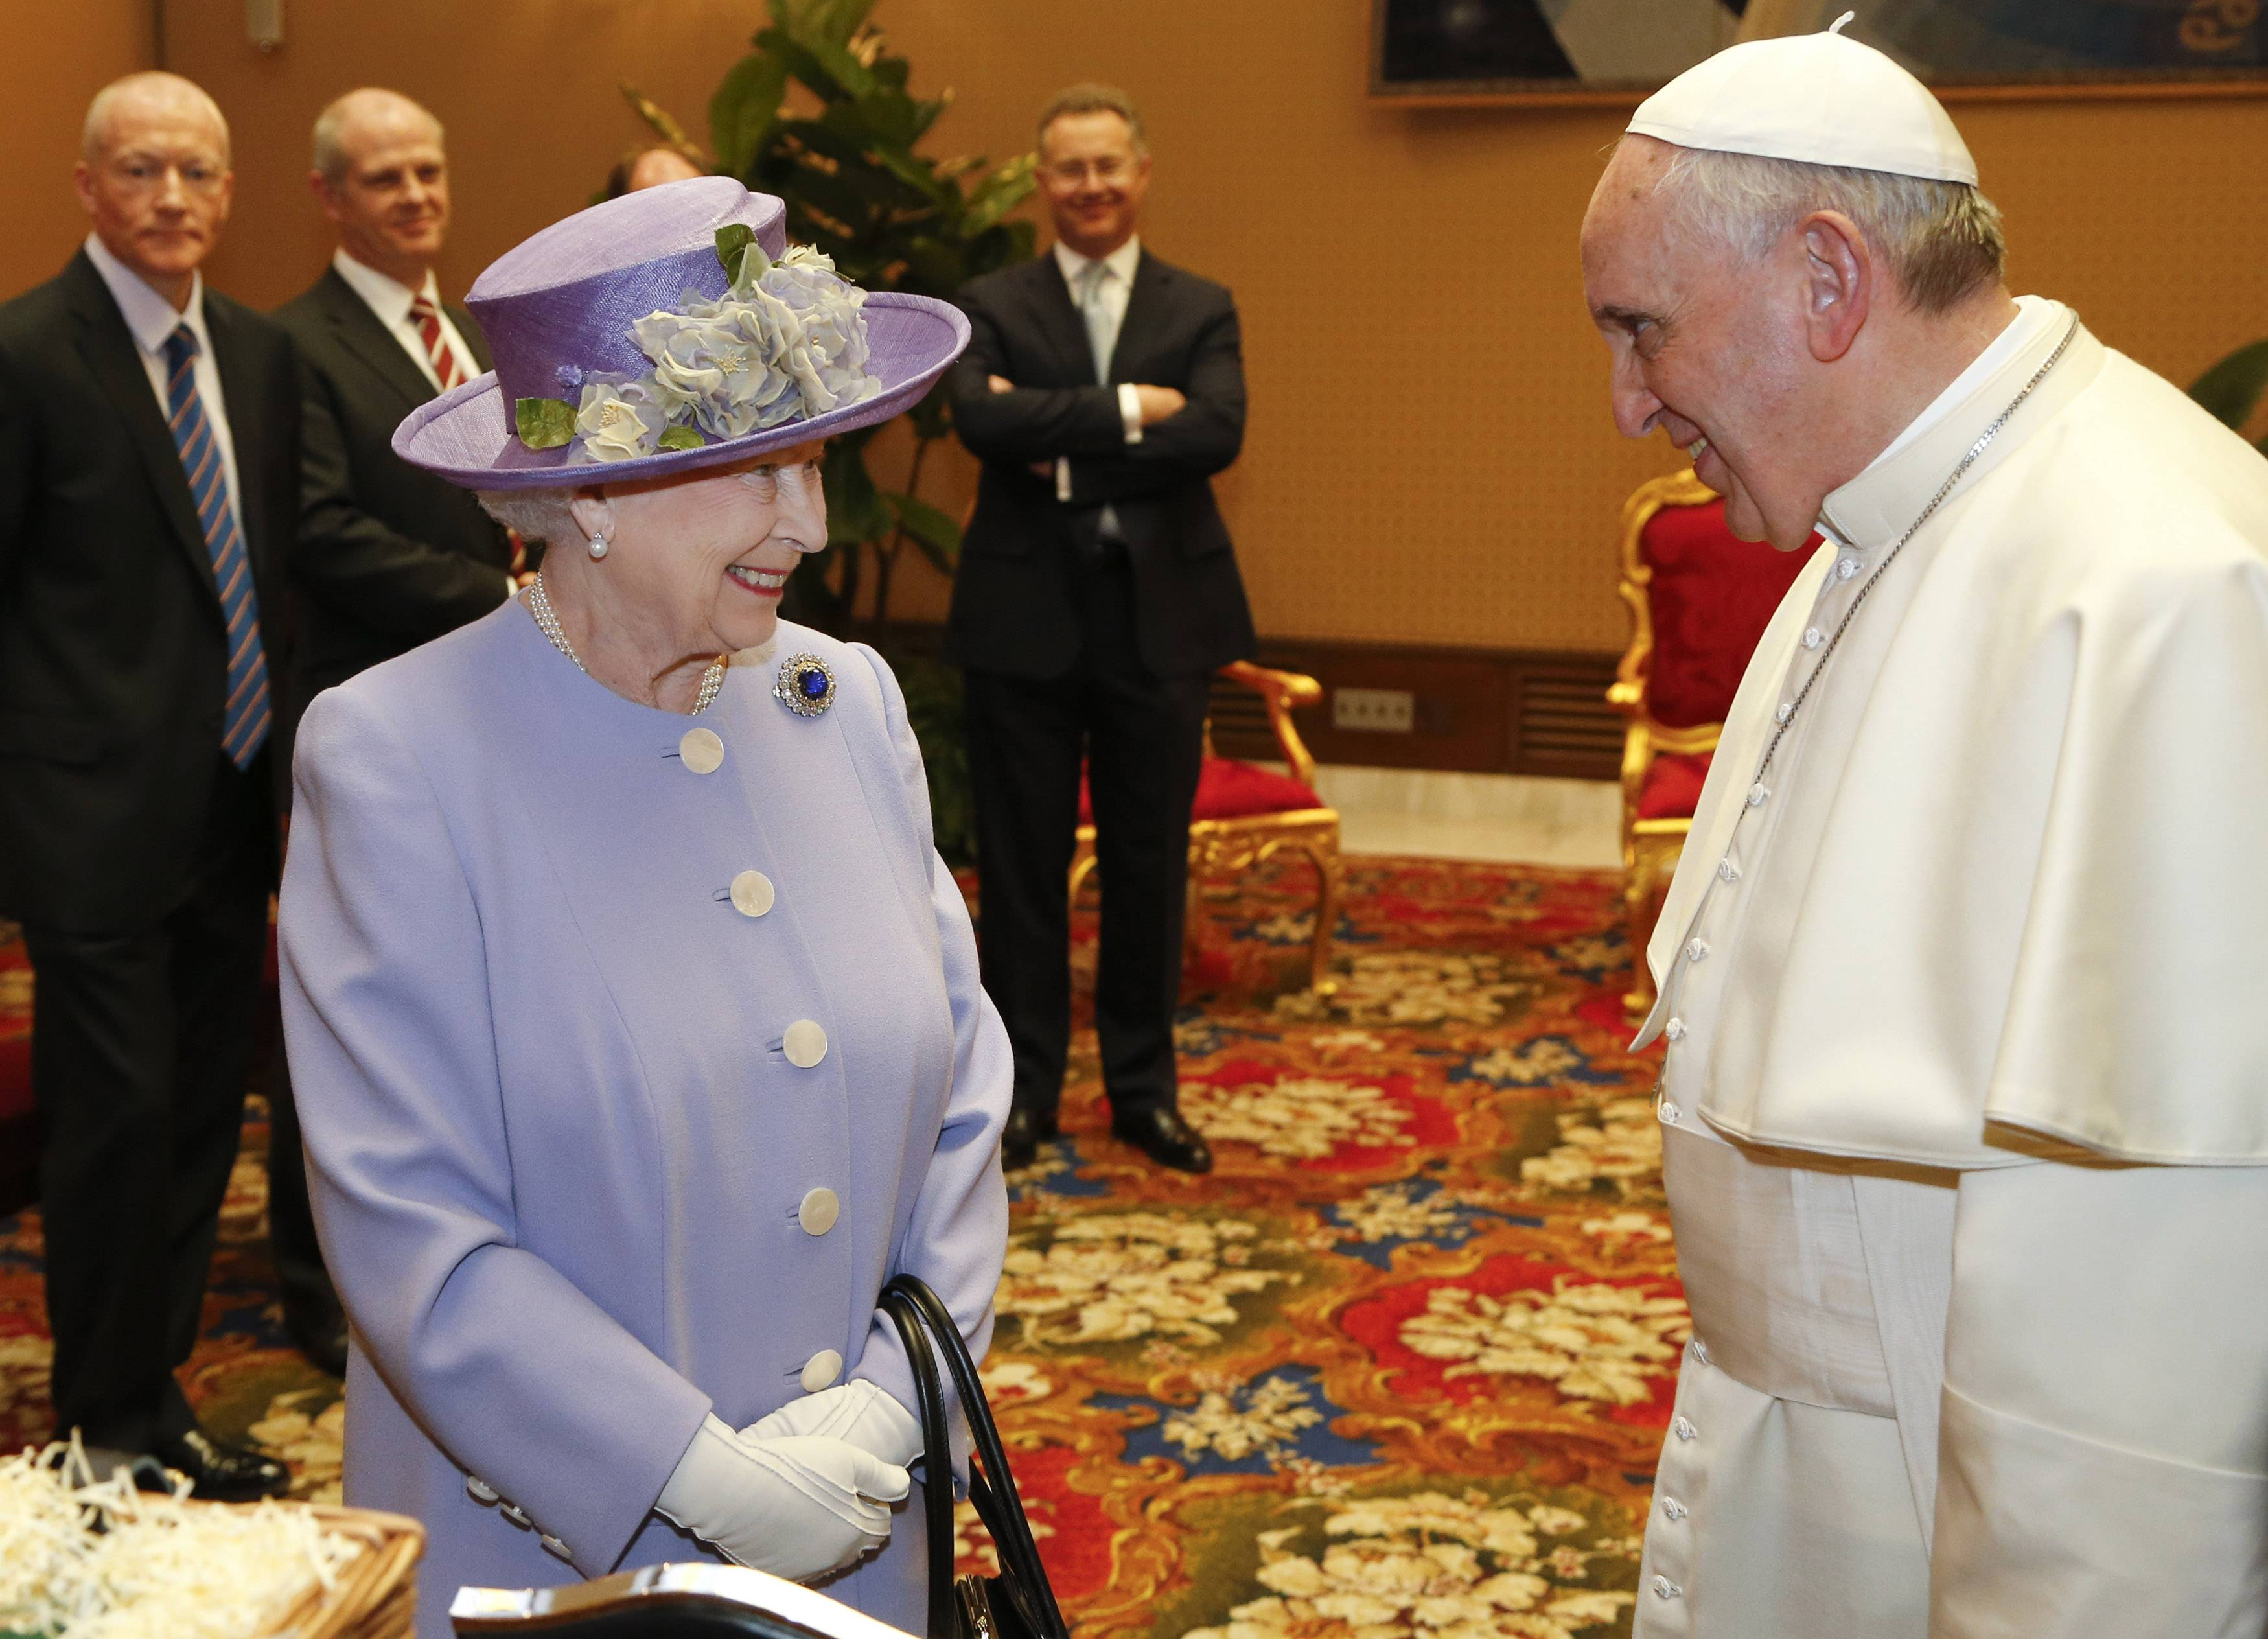 Britain's Queen Elizabeth II smiles as she talks to Pope Francis during a meeting at the Vatican, Thursday, April 3, 2014. Queen Elizabeth II has come to Rome for lunch with Italy's president Giorgio Napolitano ahead of the British monarch's first meeting with Pope Francis.